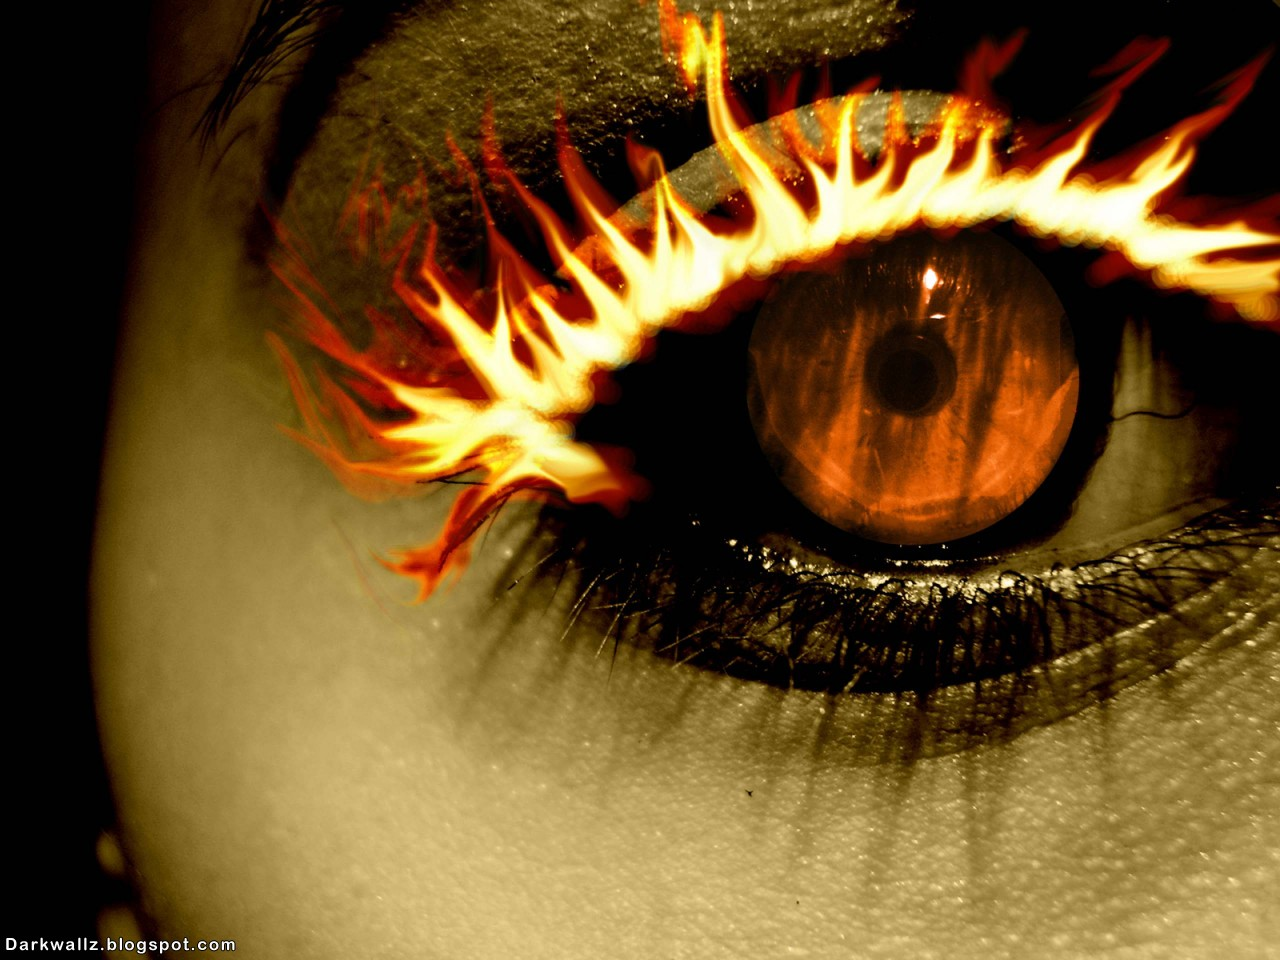 Eyes Wallpapers 63 Dark Wallpapers High Quality Black Gothic FREE 1280x960